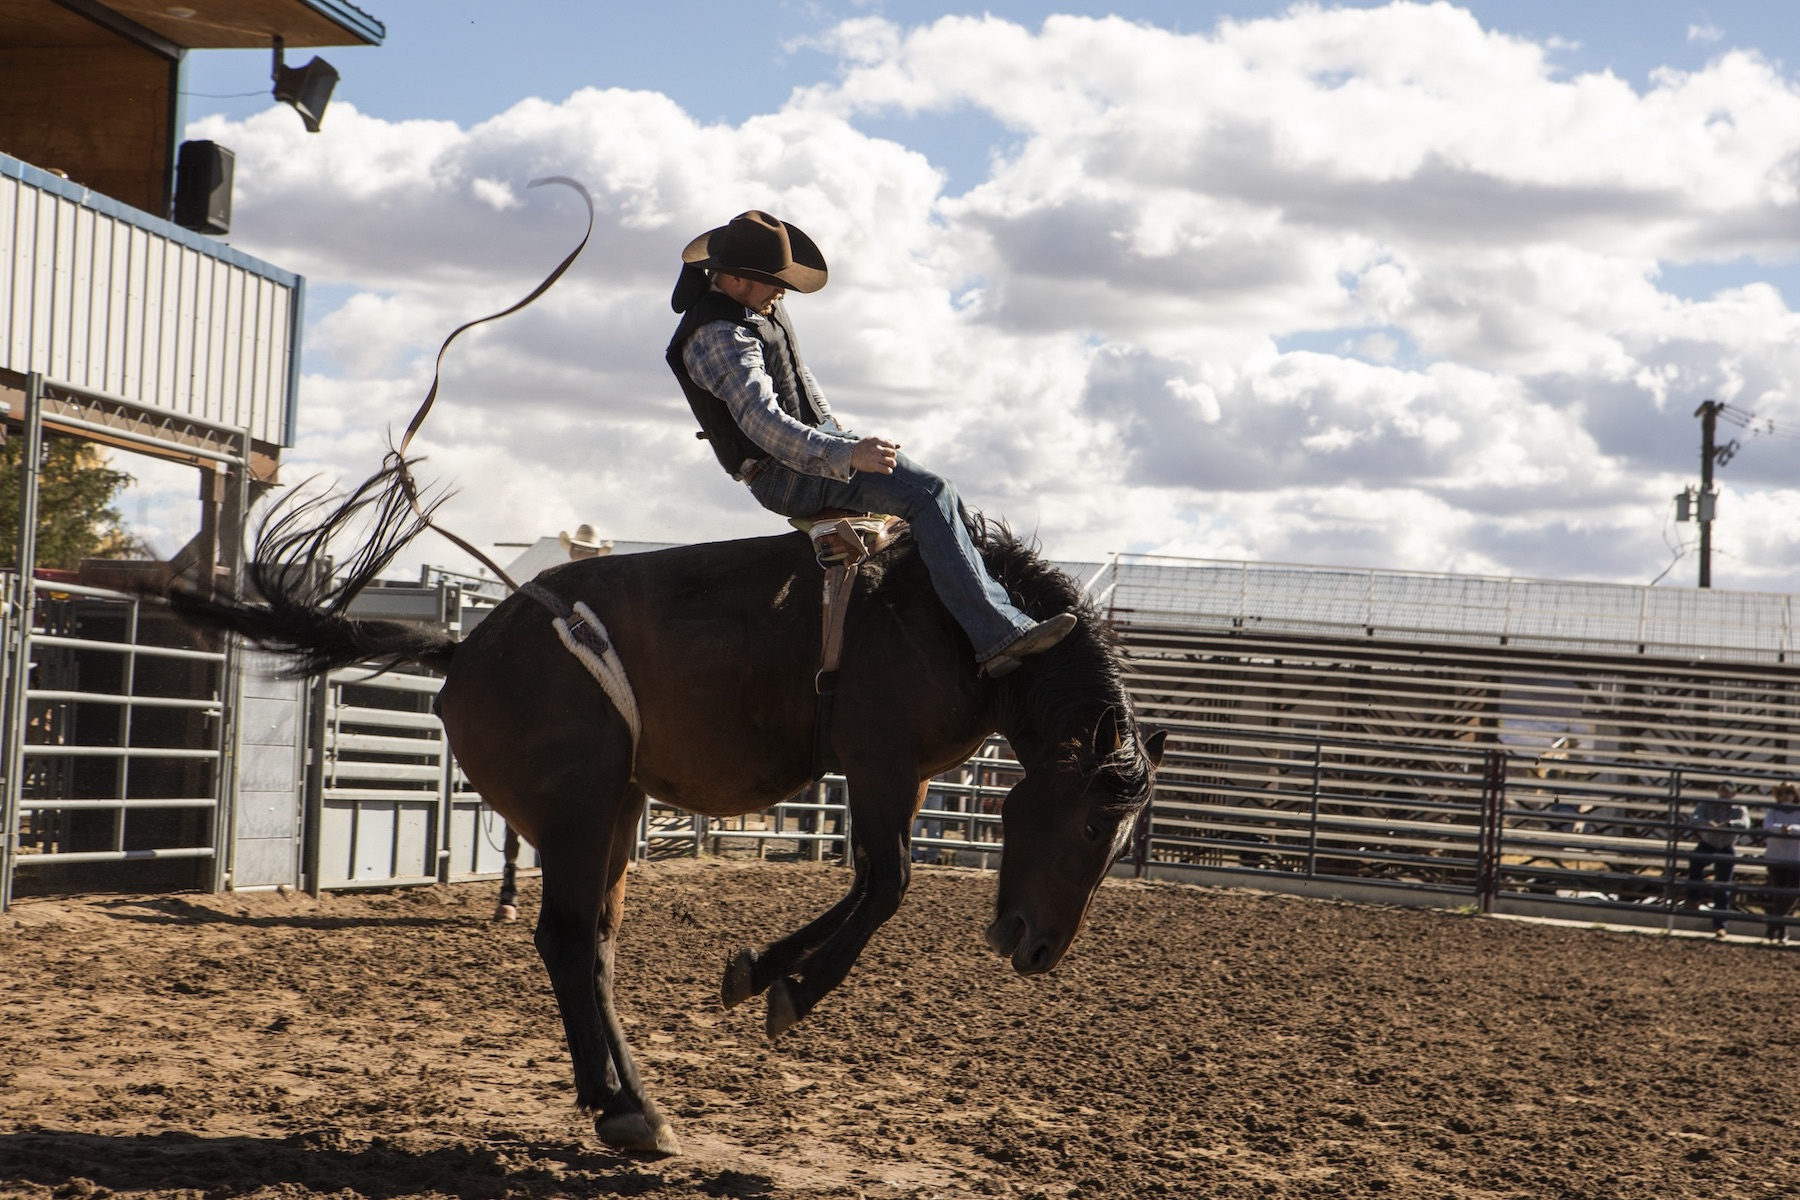 How a Professional Cowboy Became a Stunt Coordinator Thanks to His Professional Network